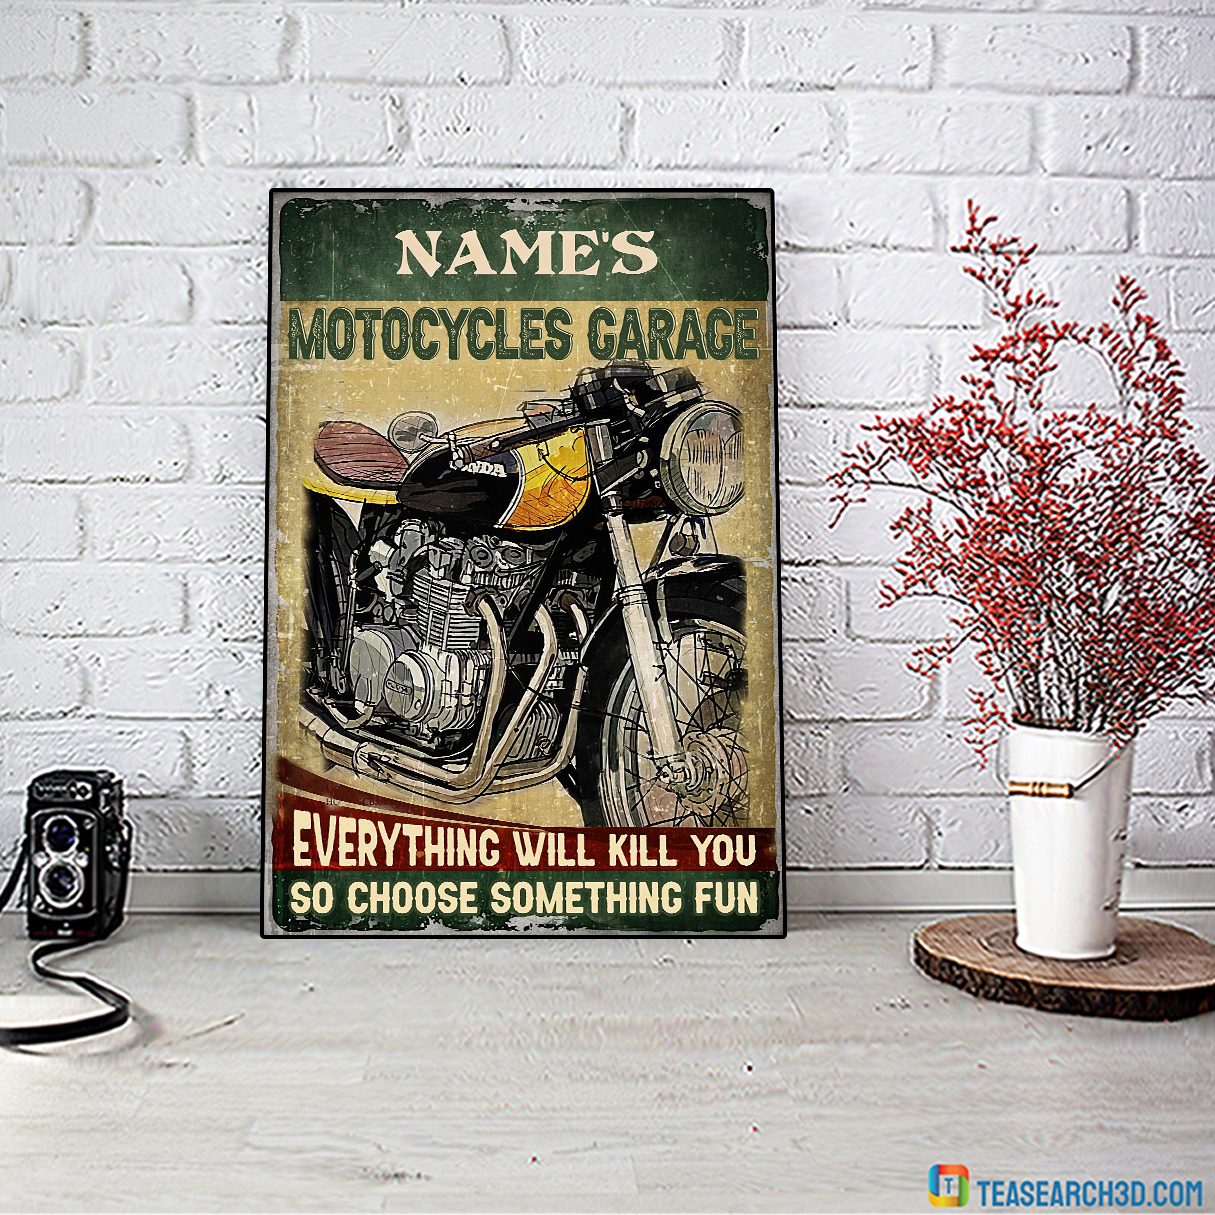 Personalized custom name motocycles garage everything will kill you poster